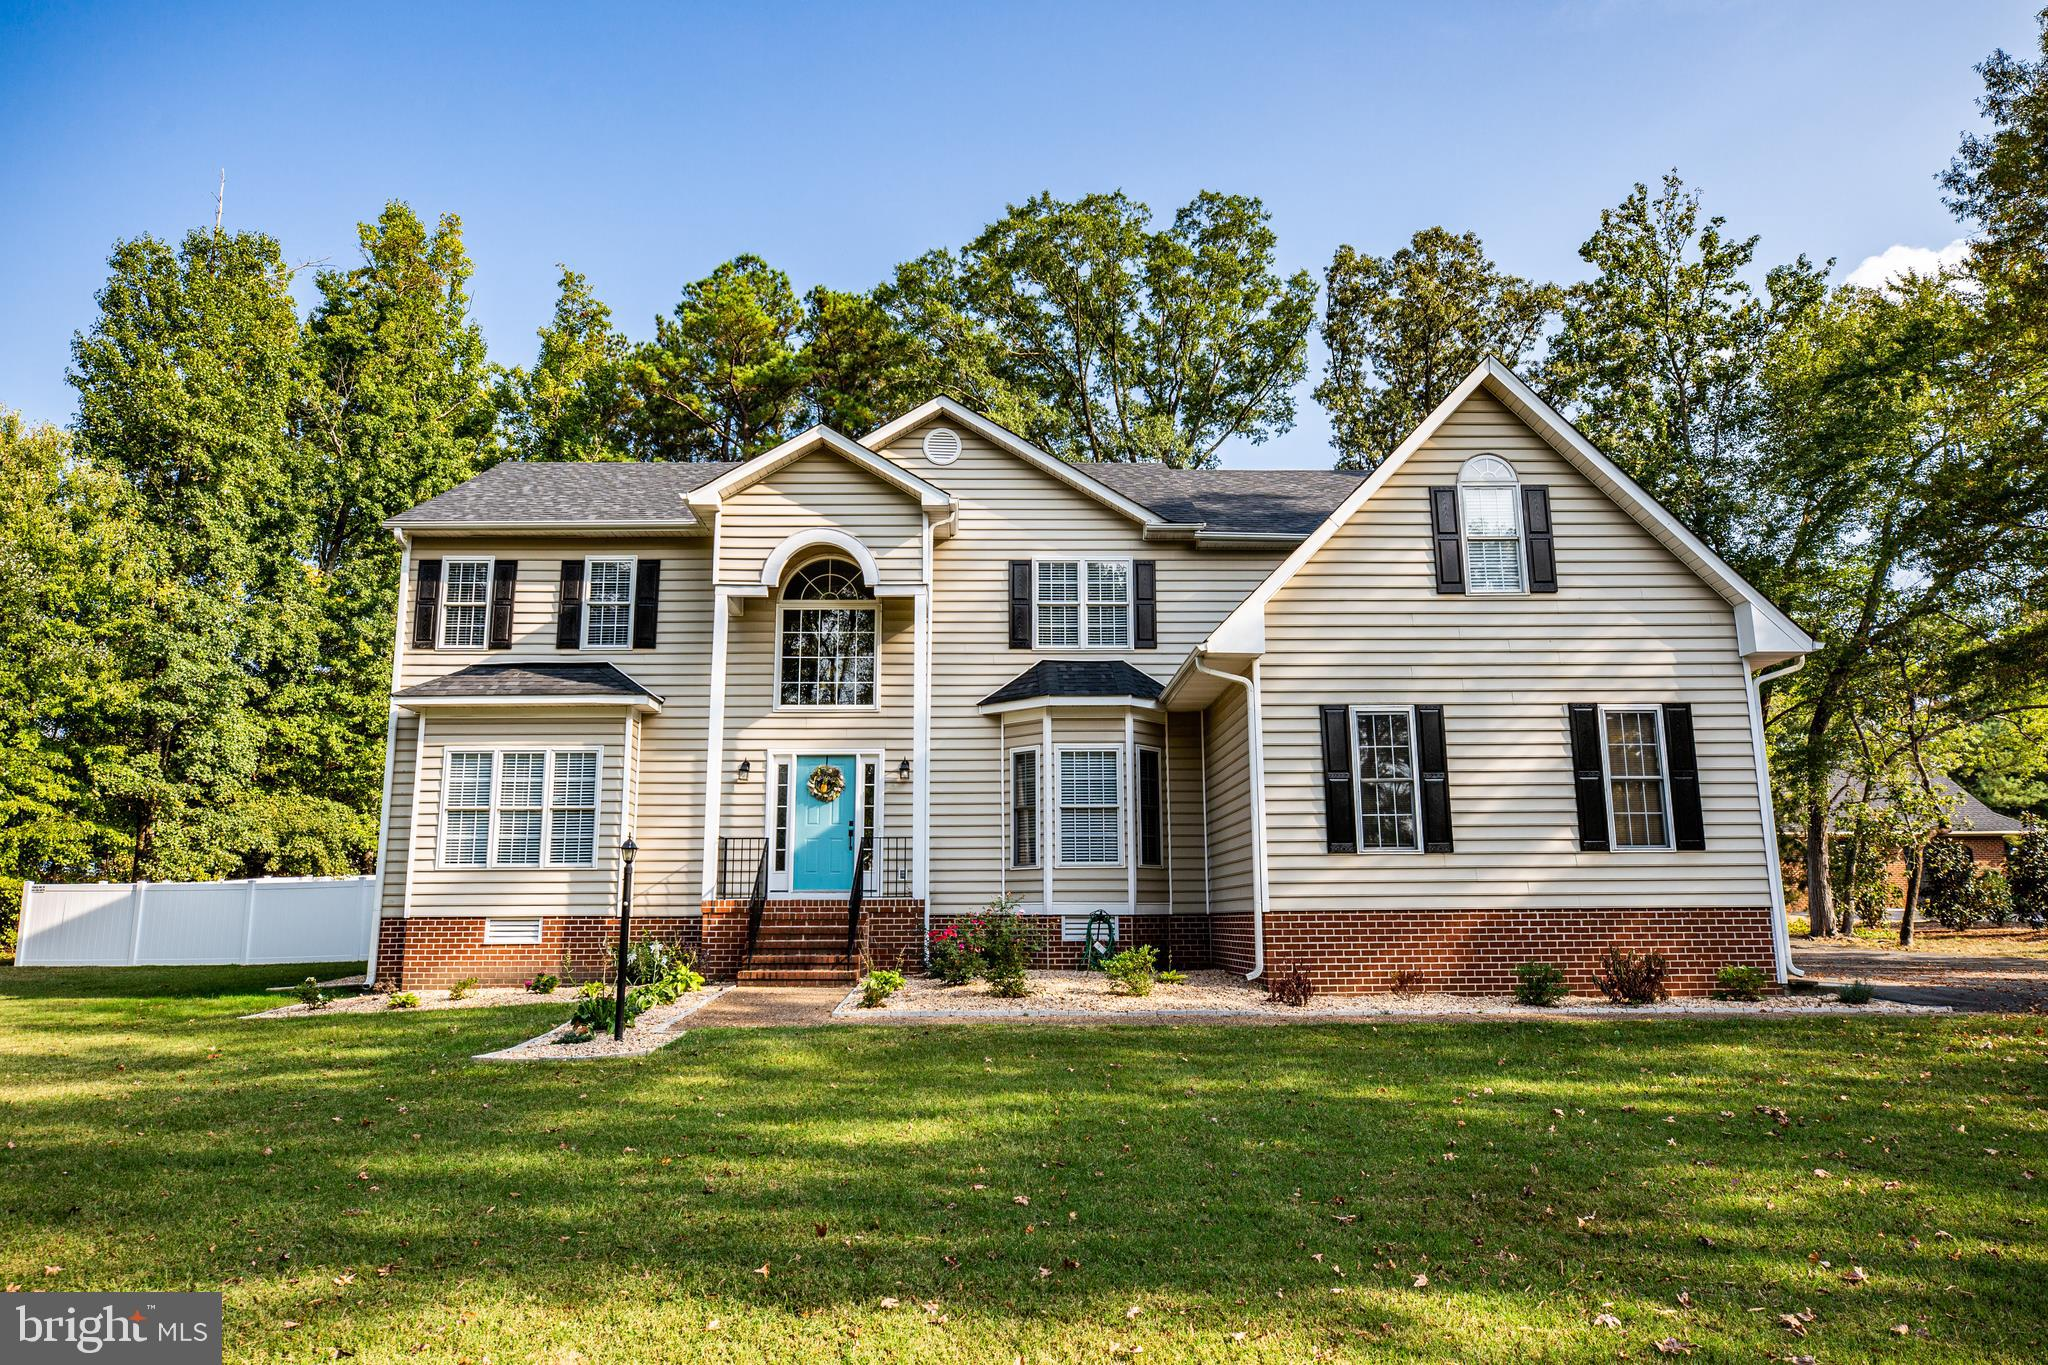 10555 WOODMAN ROAD, GLEN ALLEN, VA 23060